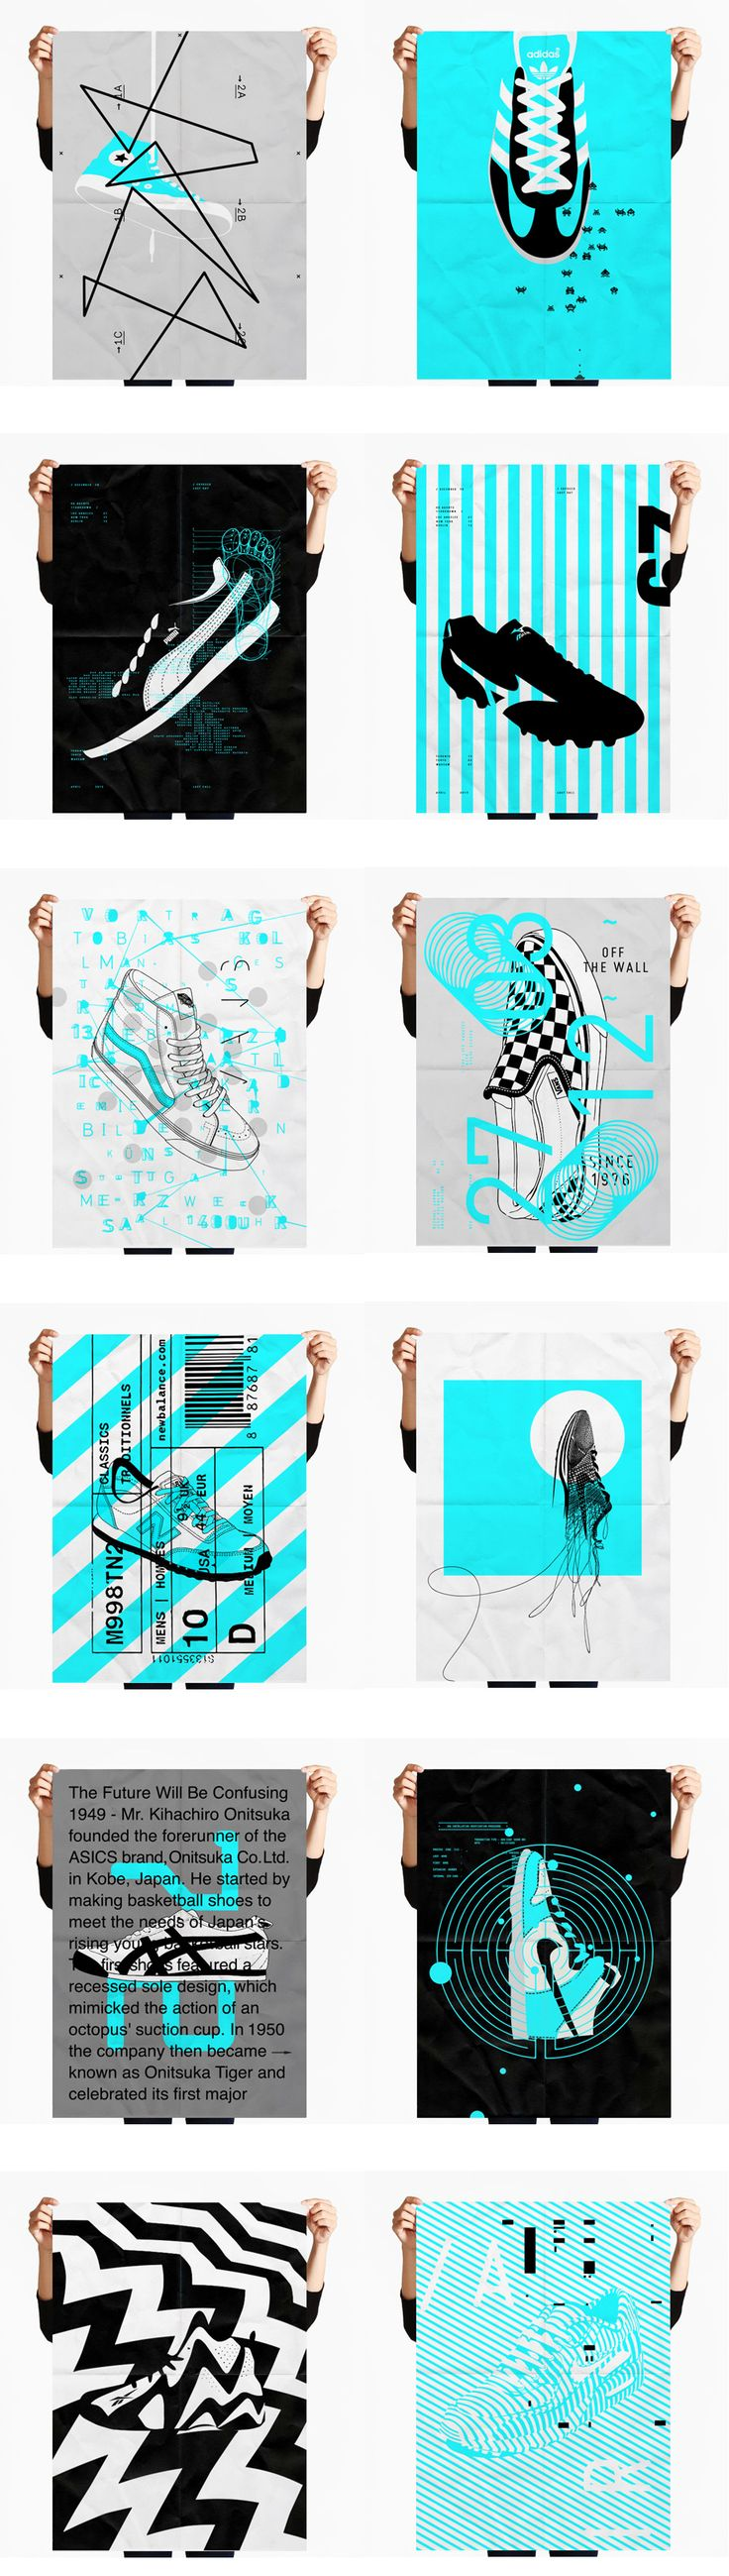 Poster design lesson plan - Personal Project Screen Printing Sneakers Poster Series